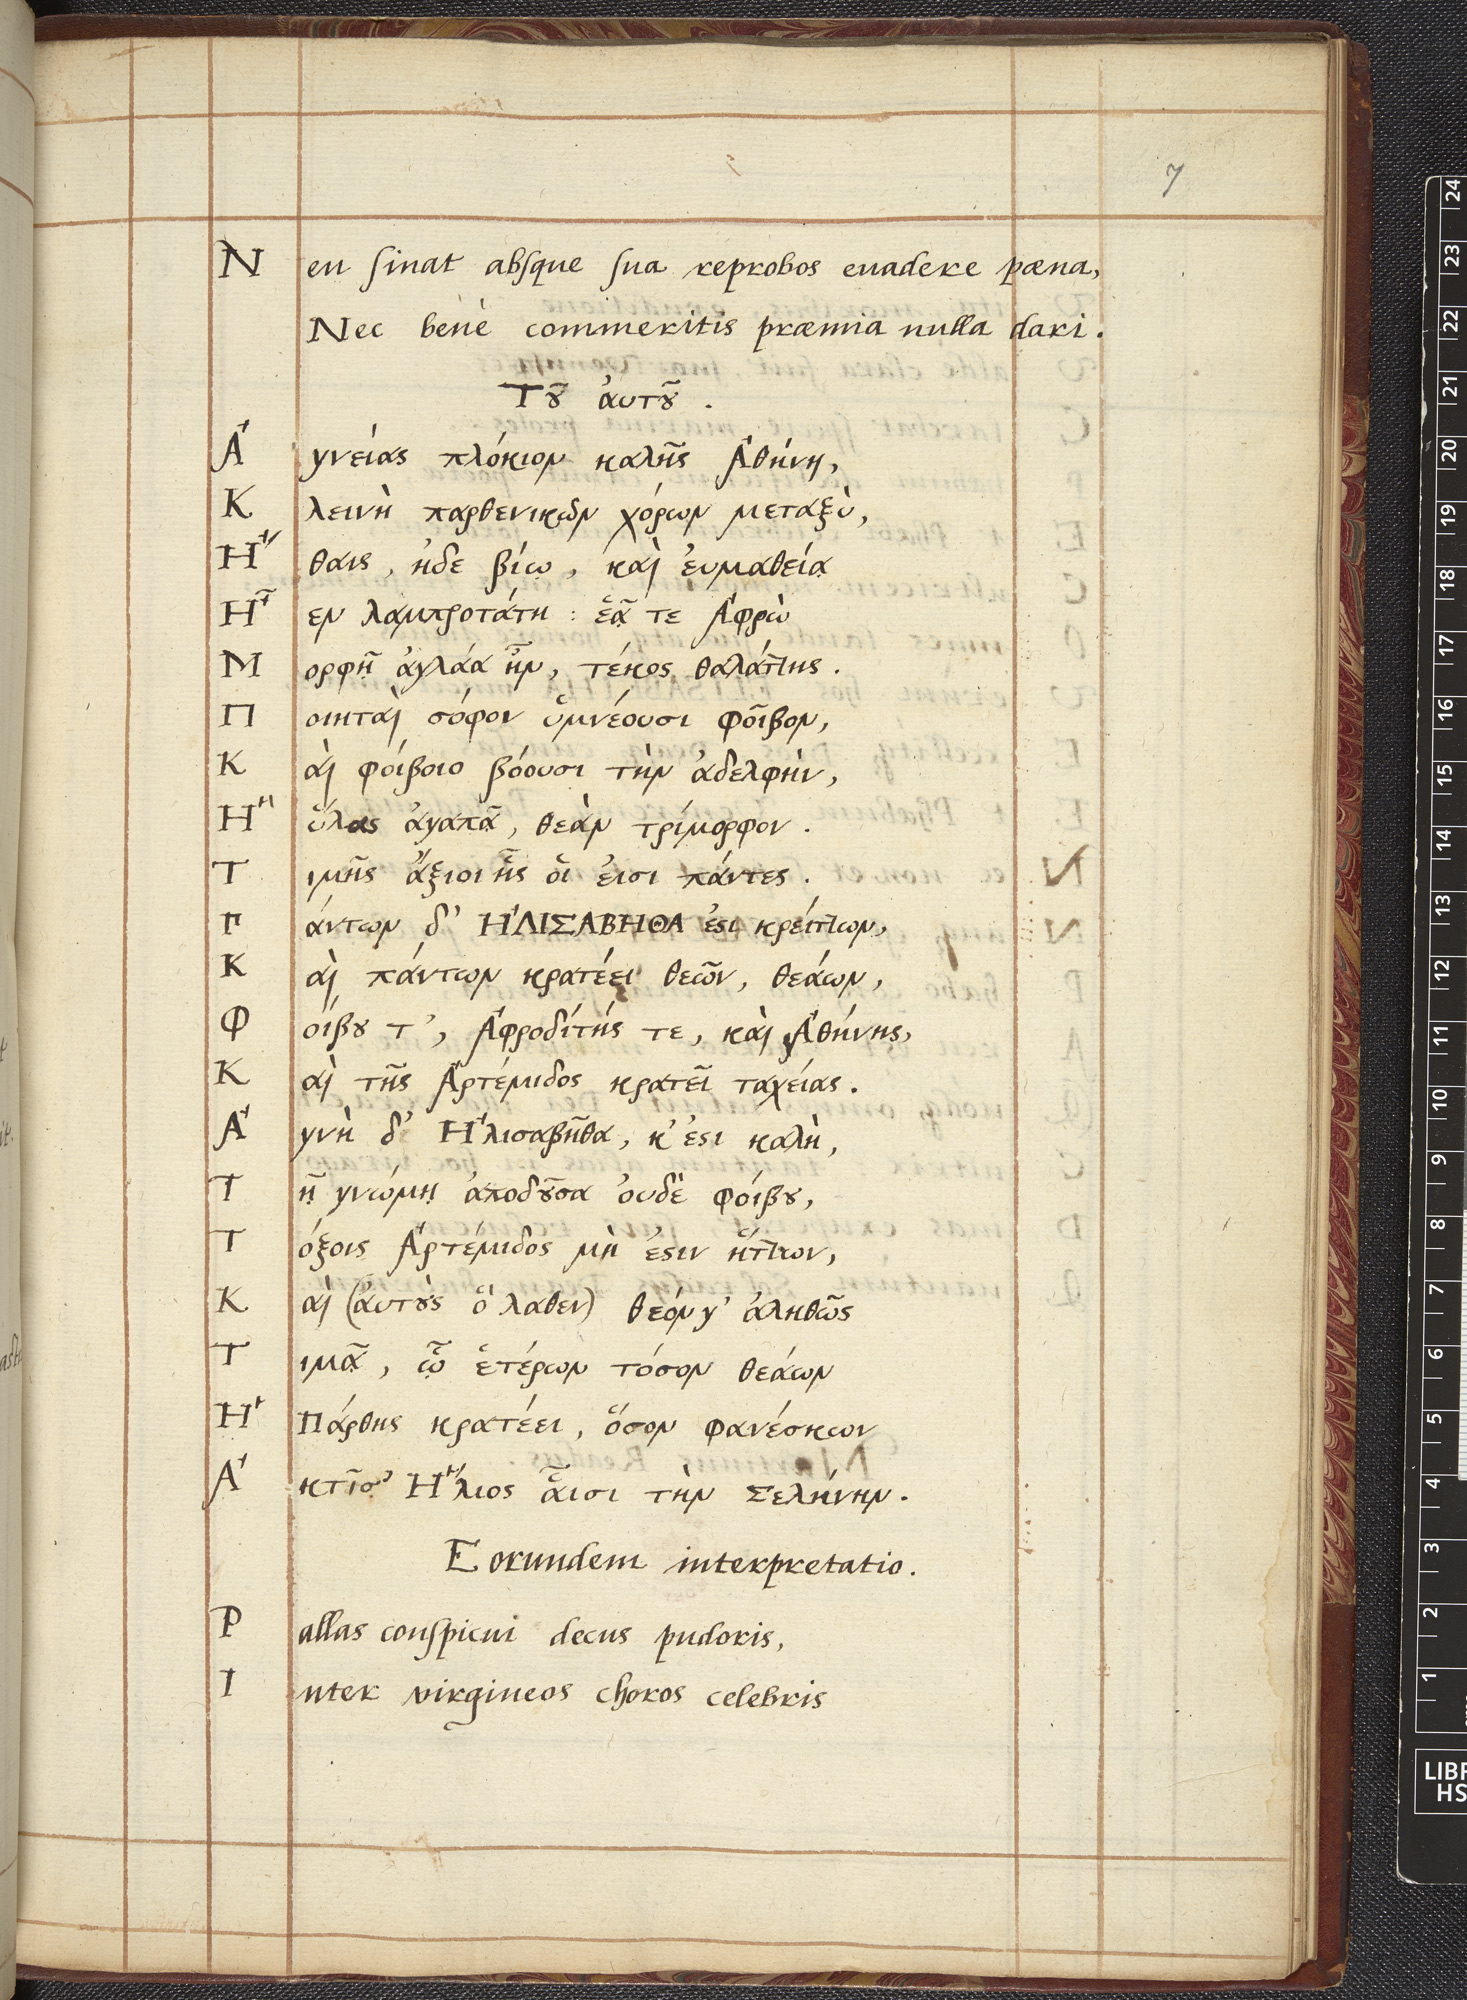 Complimentary verses to Elizabeth I by members of St Paul's School (Royal 12 A LXVII f007r)